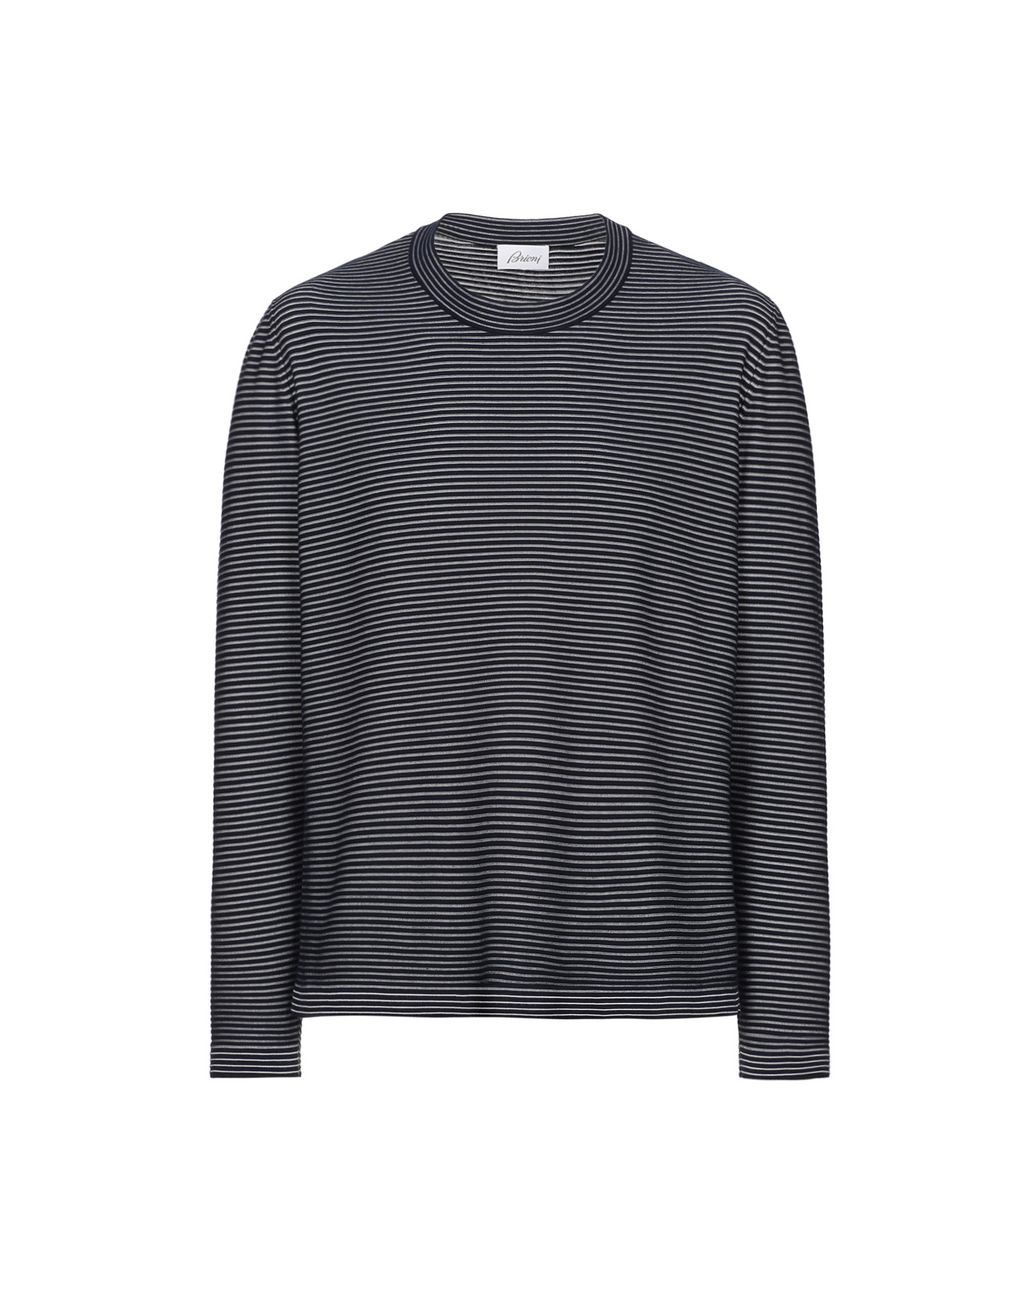 BRIONI Navy Blue and White Striped Knitwear Knitwear Man f